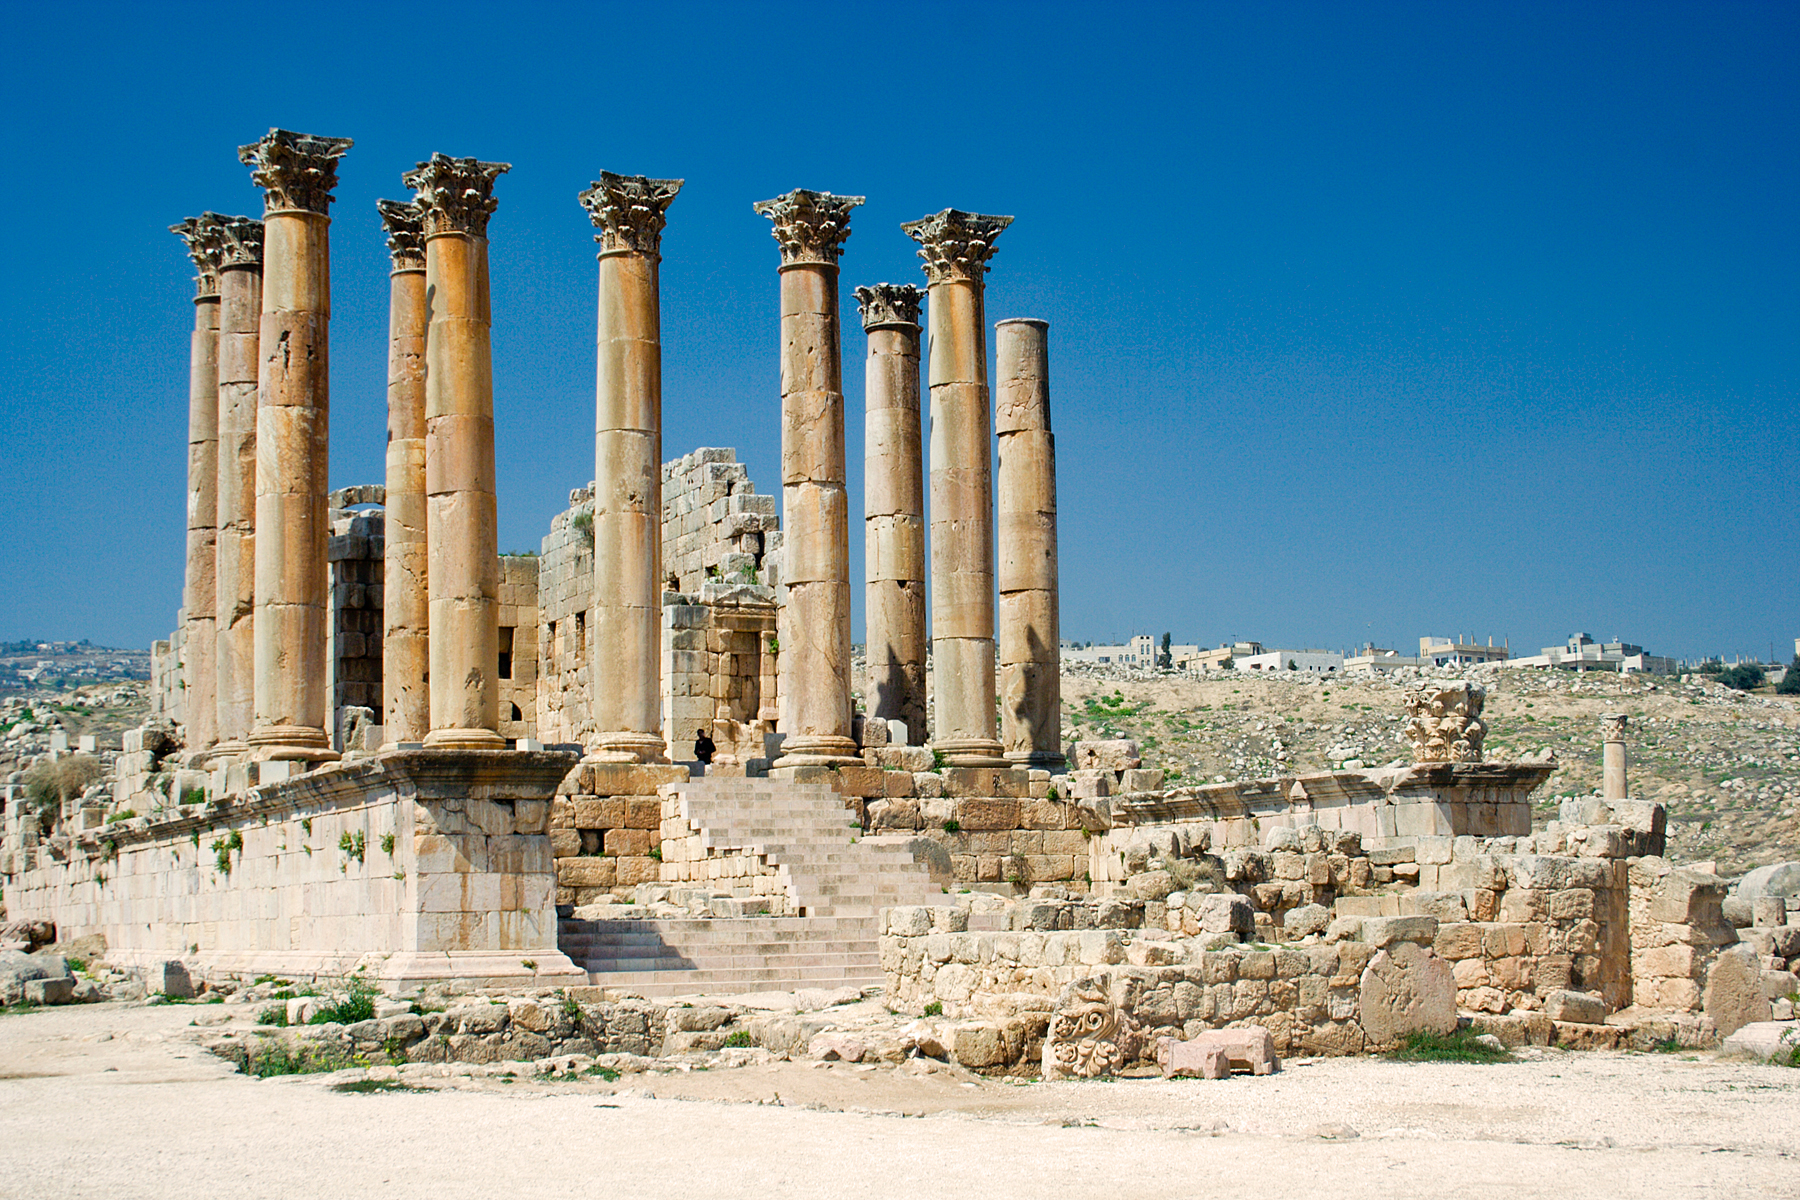 The temple of Artemis, which was the seven wonders of the ancient world was burned down on the day of Alexander's birth.